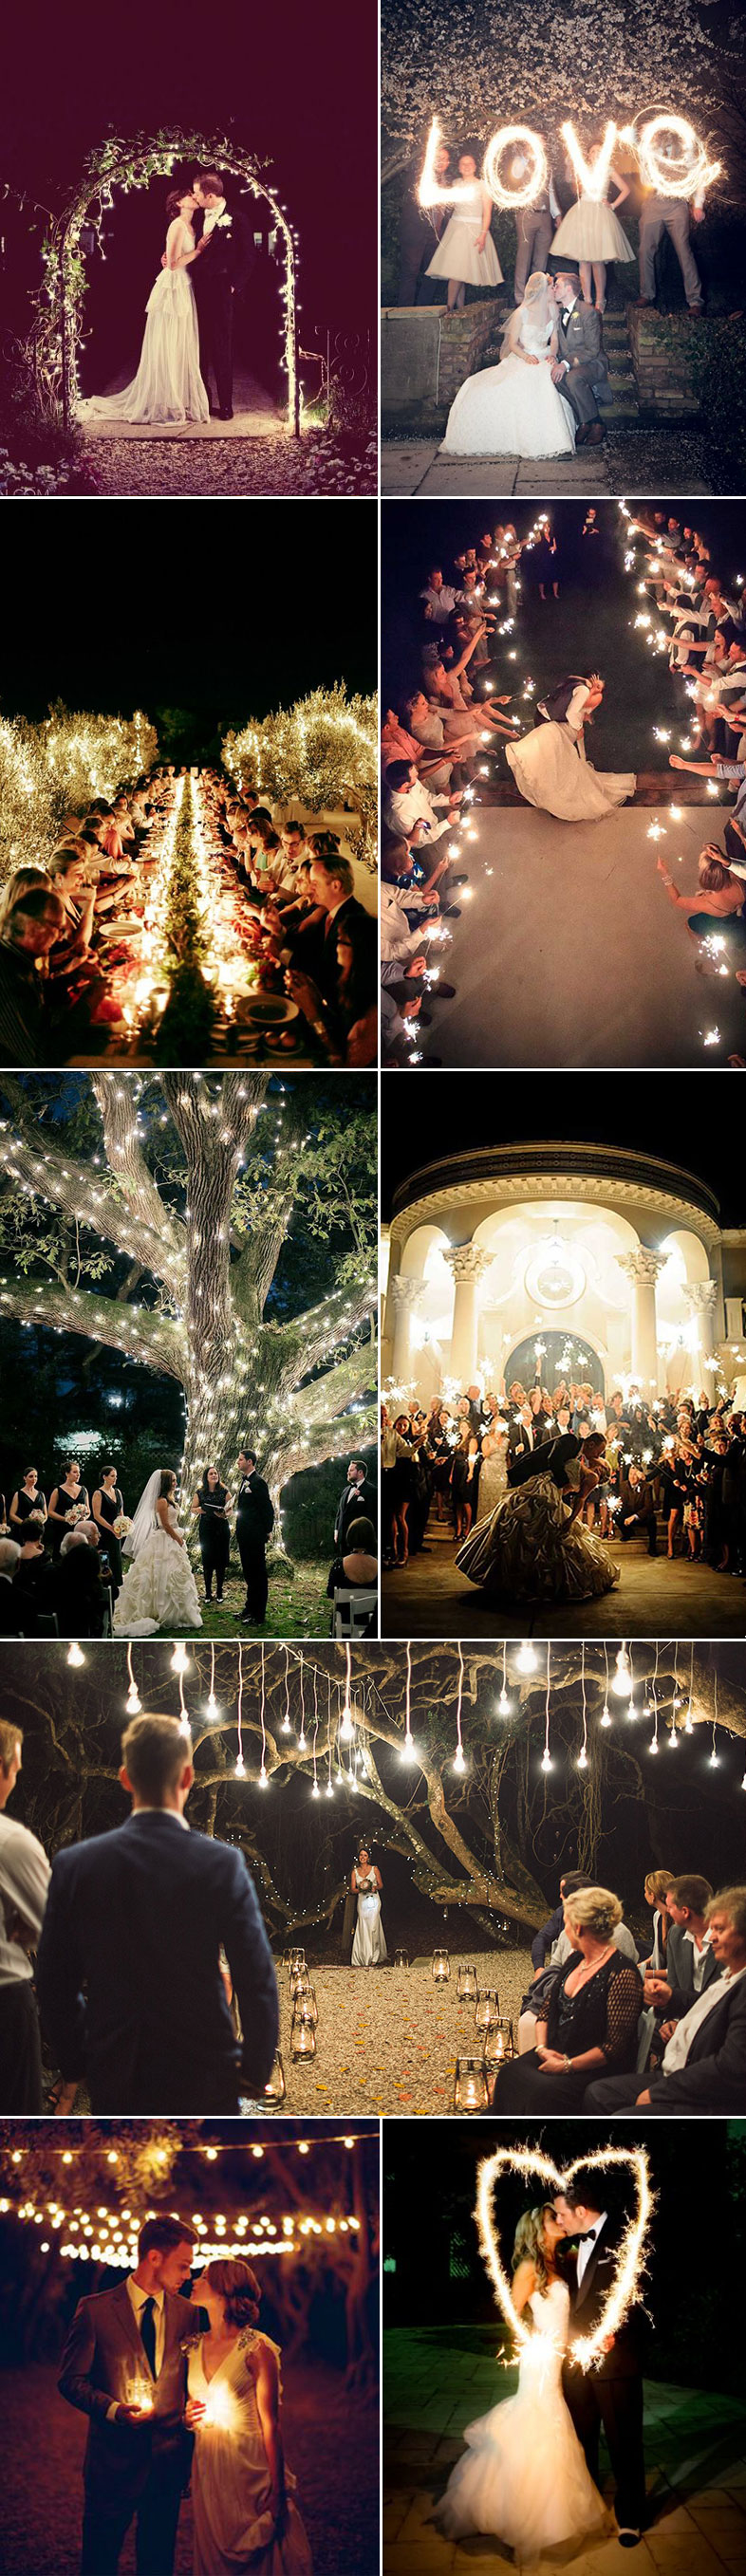 Inspiration For A Night Wedding